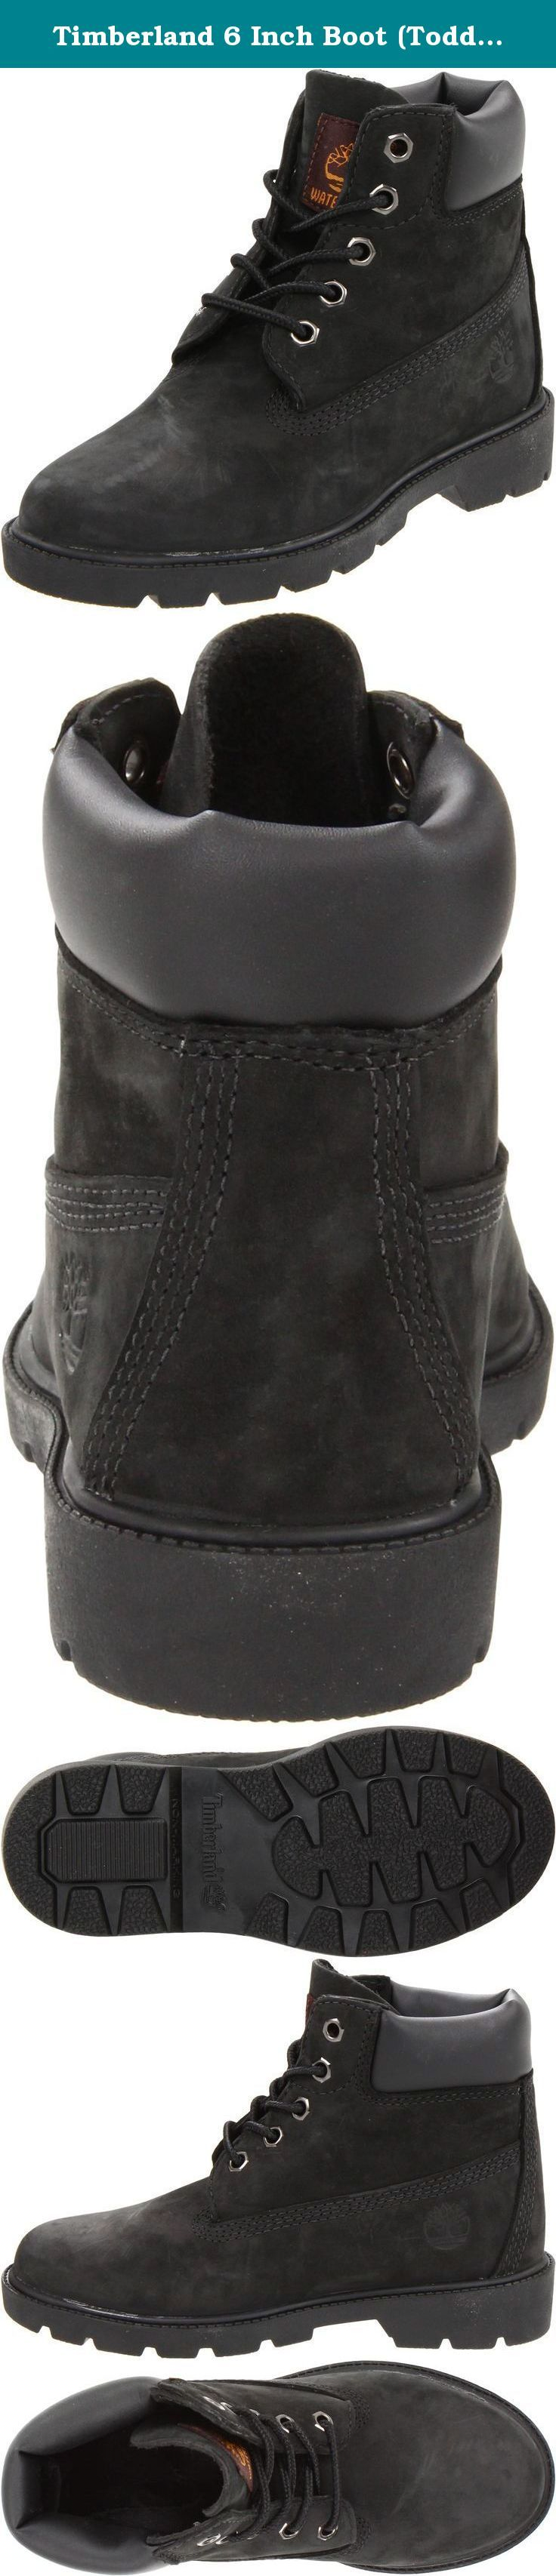 Timberland 6 Inch Boot (Toddler/Little Kid/Big Kid),Black ,3.5 M US Big Kid. A traditional classic for the kids, keep them warm and dry in the wet season. Sure to stand up against any kind of rough outdoor play.